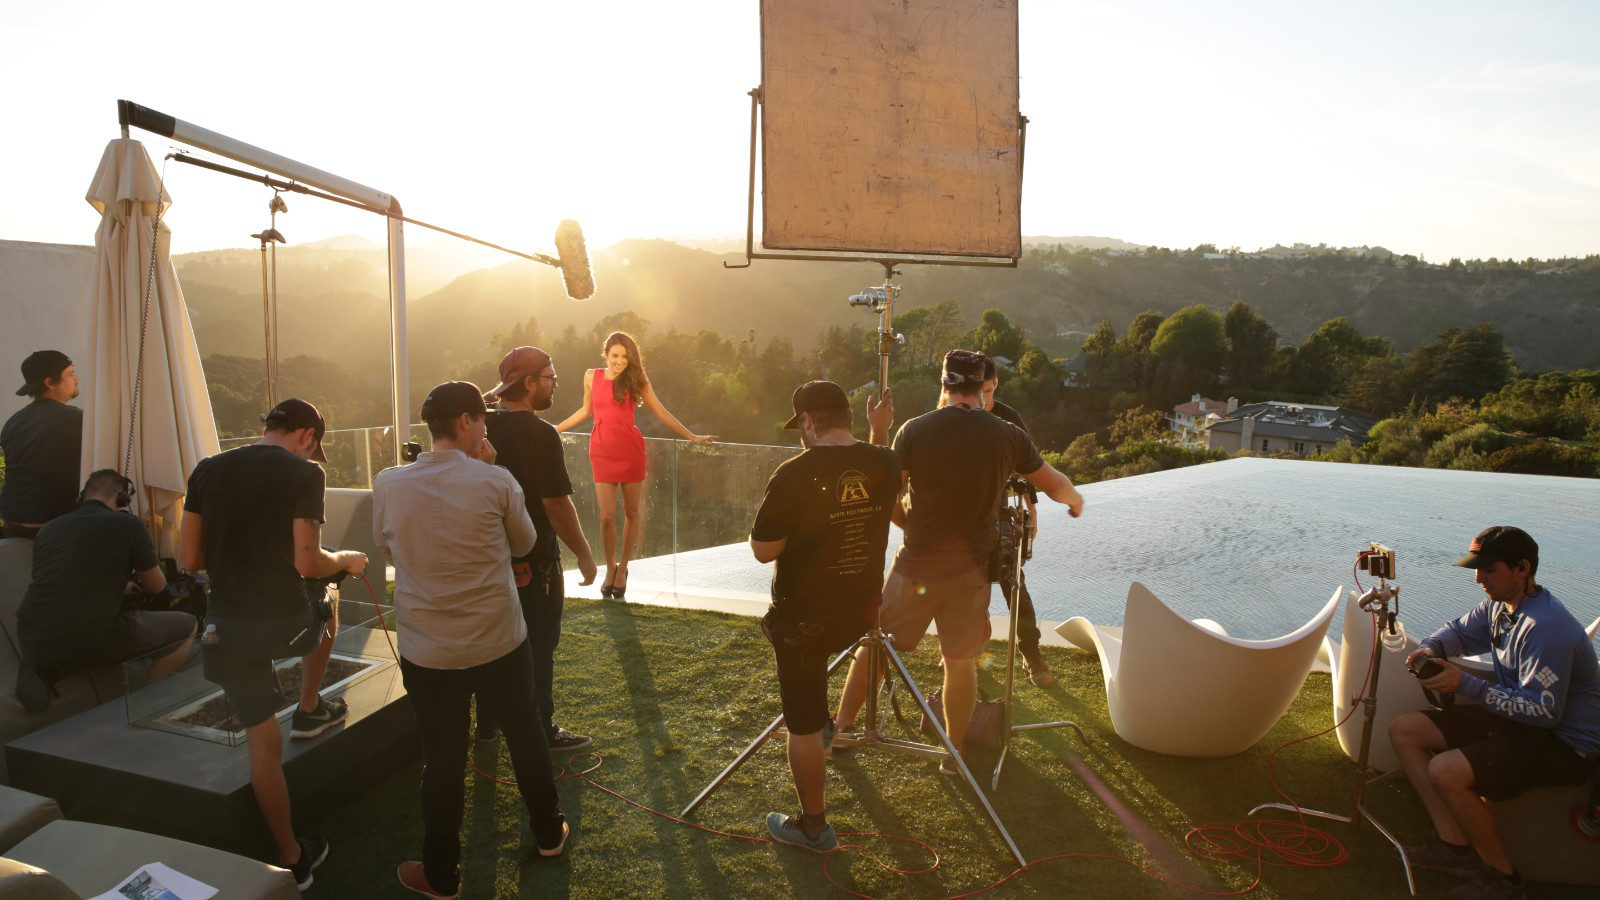 Airbnb - How to Airbnb Mexico - Artex Productions - Best Commercial Video Production Crew in South Florida